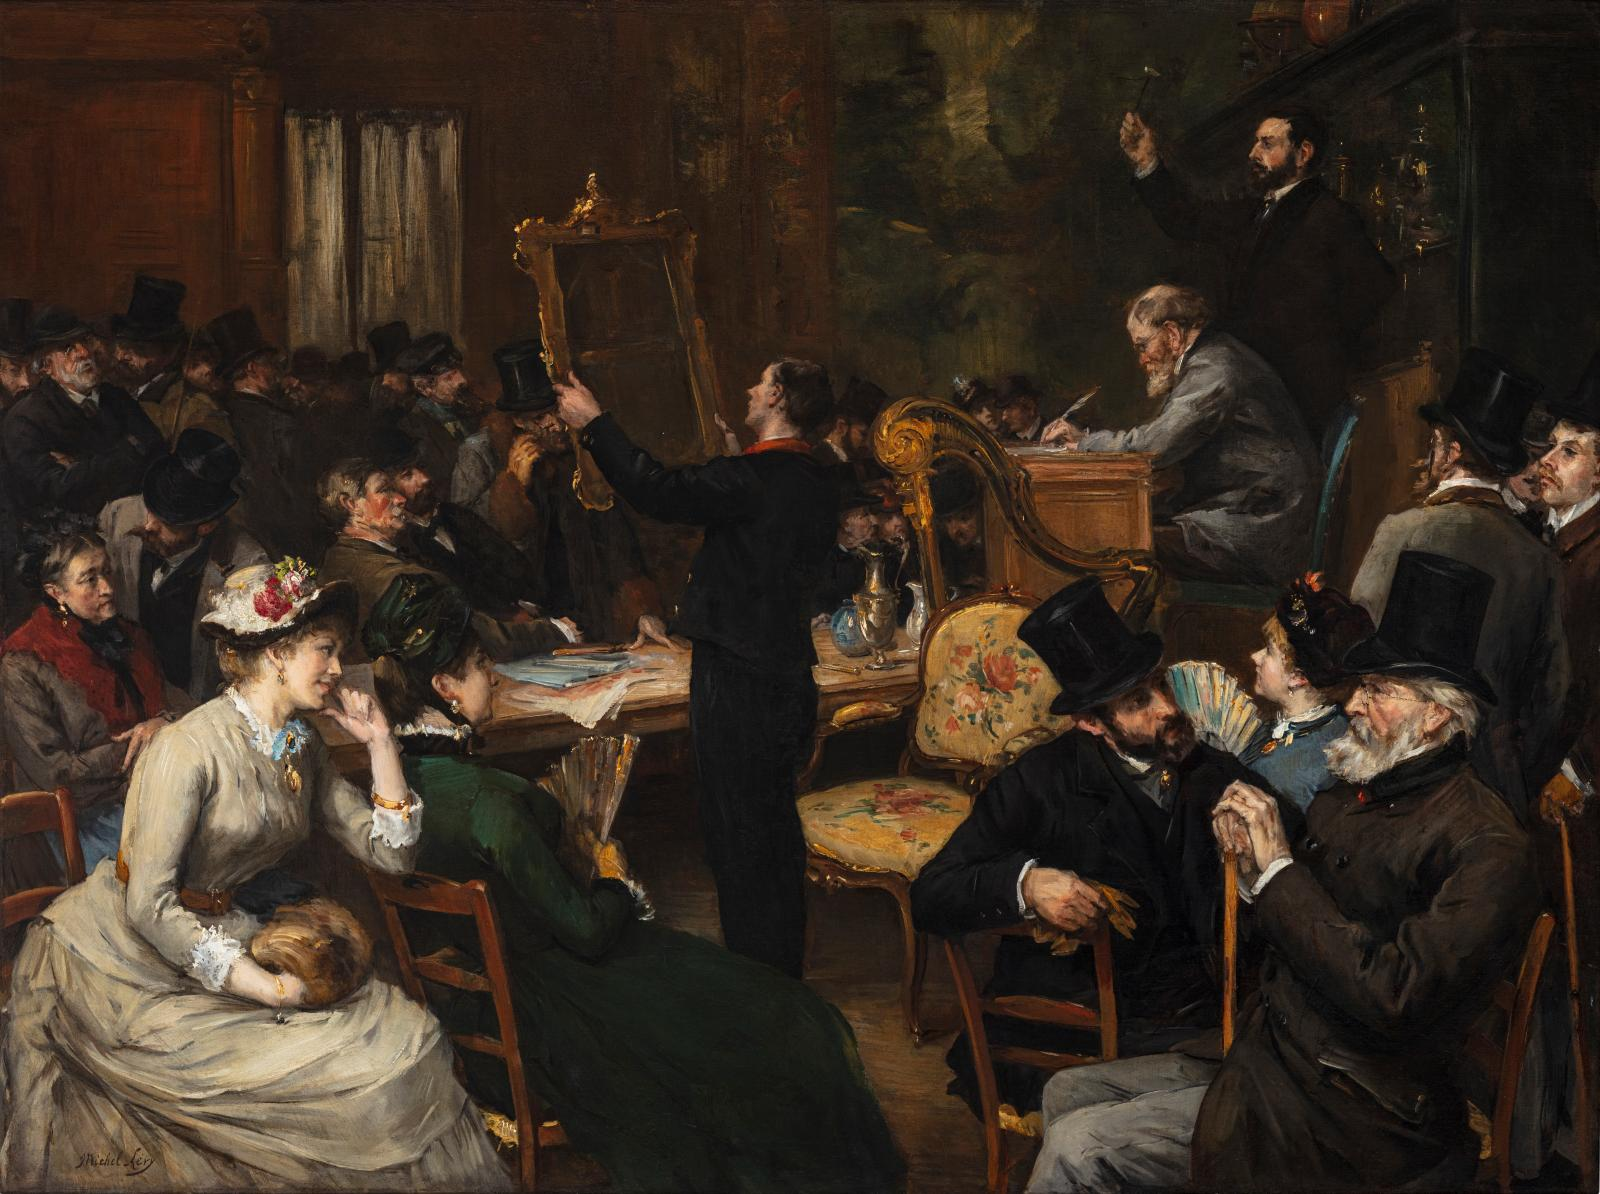 Henri Michel-Lévy (1844-1914), La Vente publique, oil on canvas, 99 x 131.4 cm. Painting presented at Fine Arts Paris 2019.Courtesy Talaba